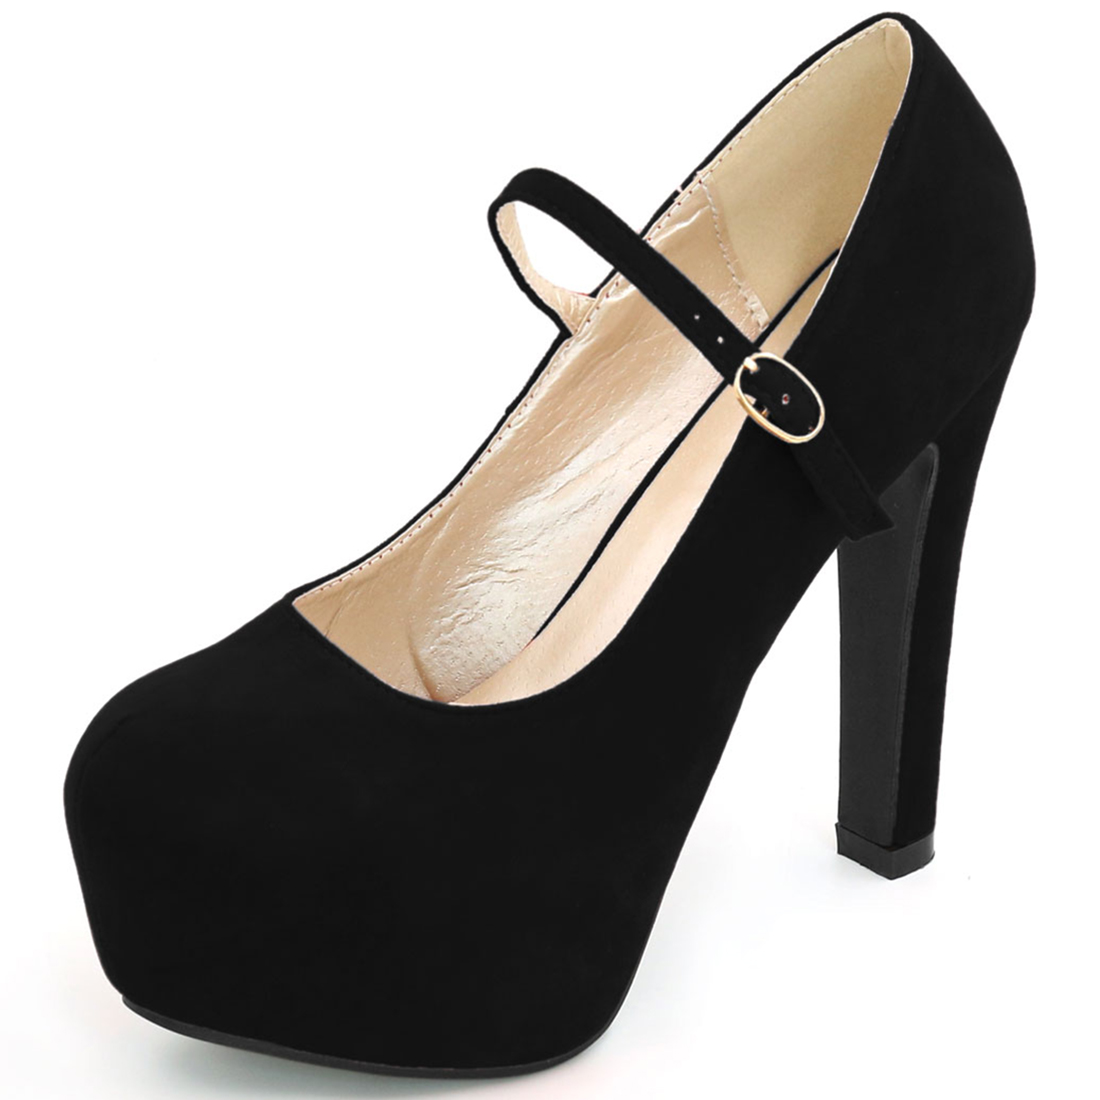 Woman Rounded Toe Chunky Platform Buckle Strap Pumps Black US 8